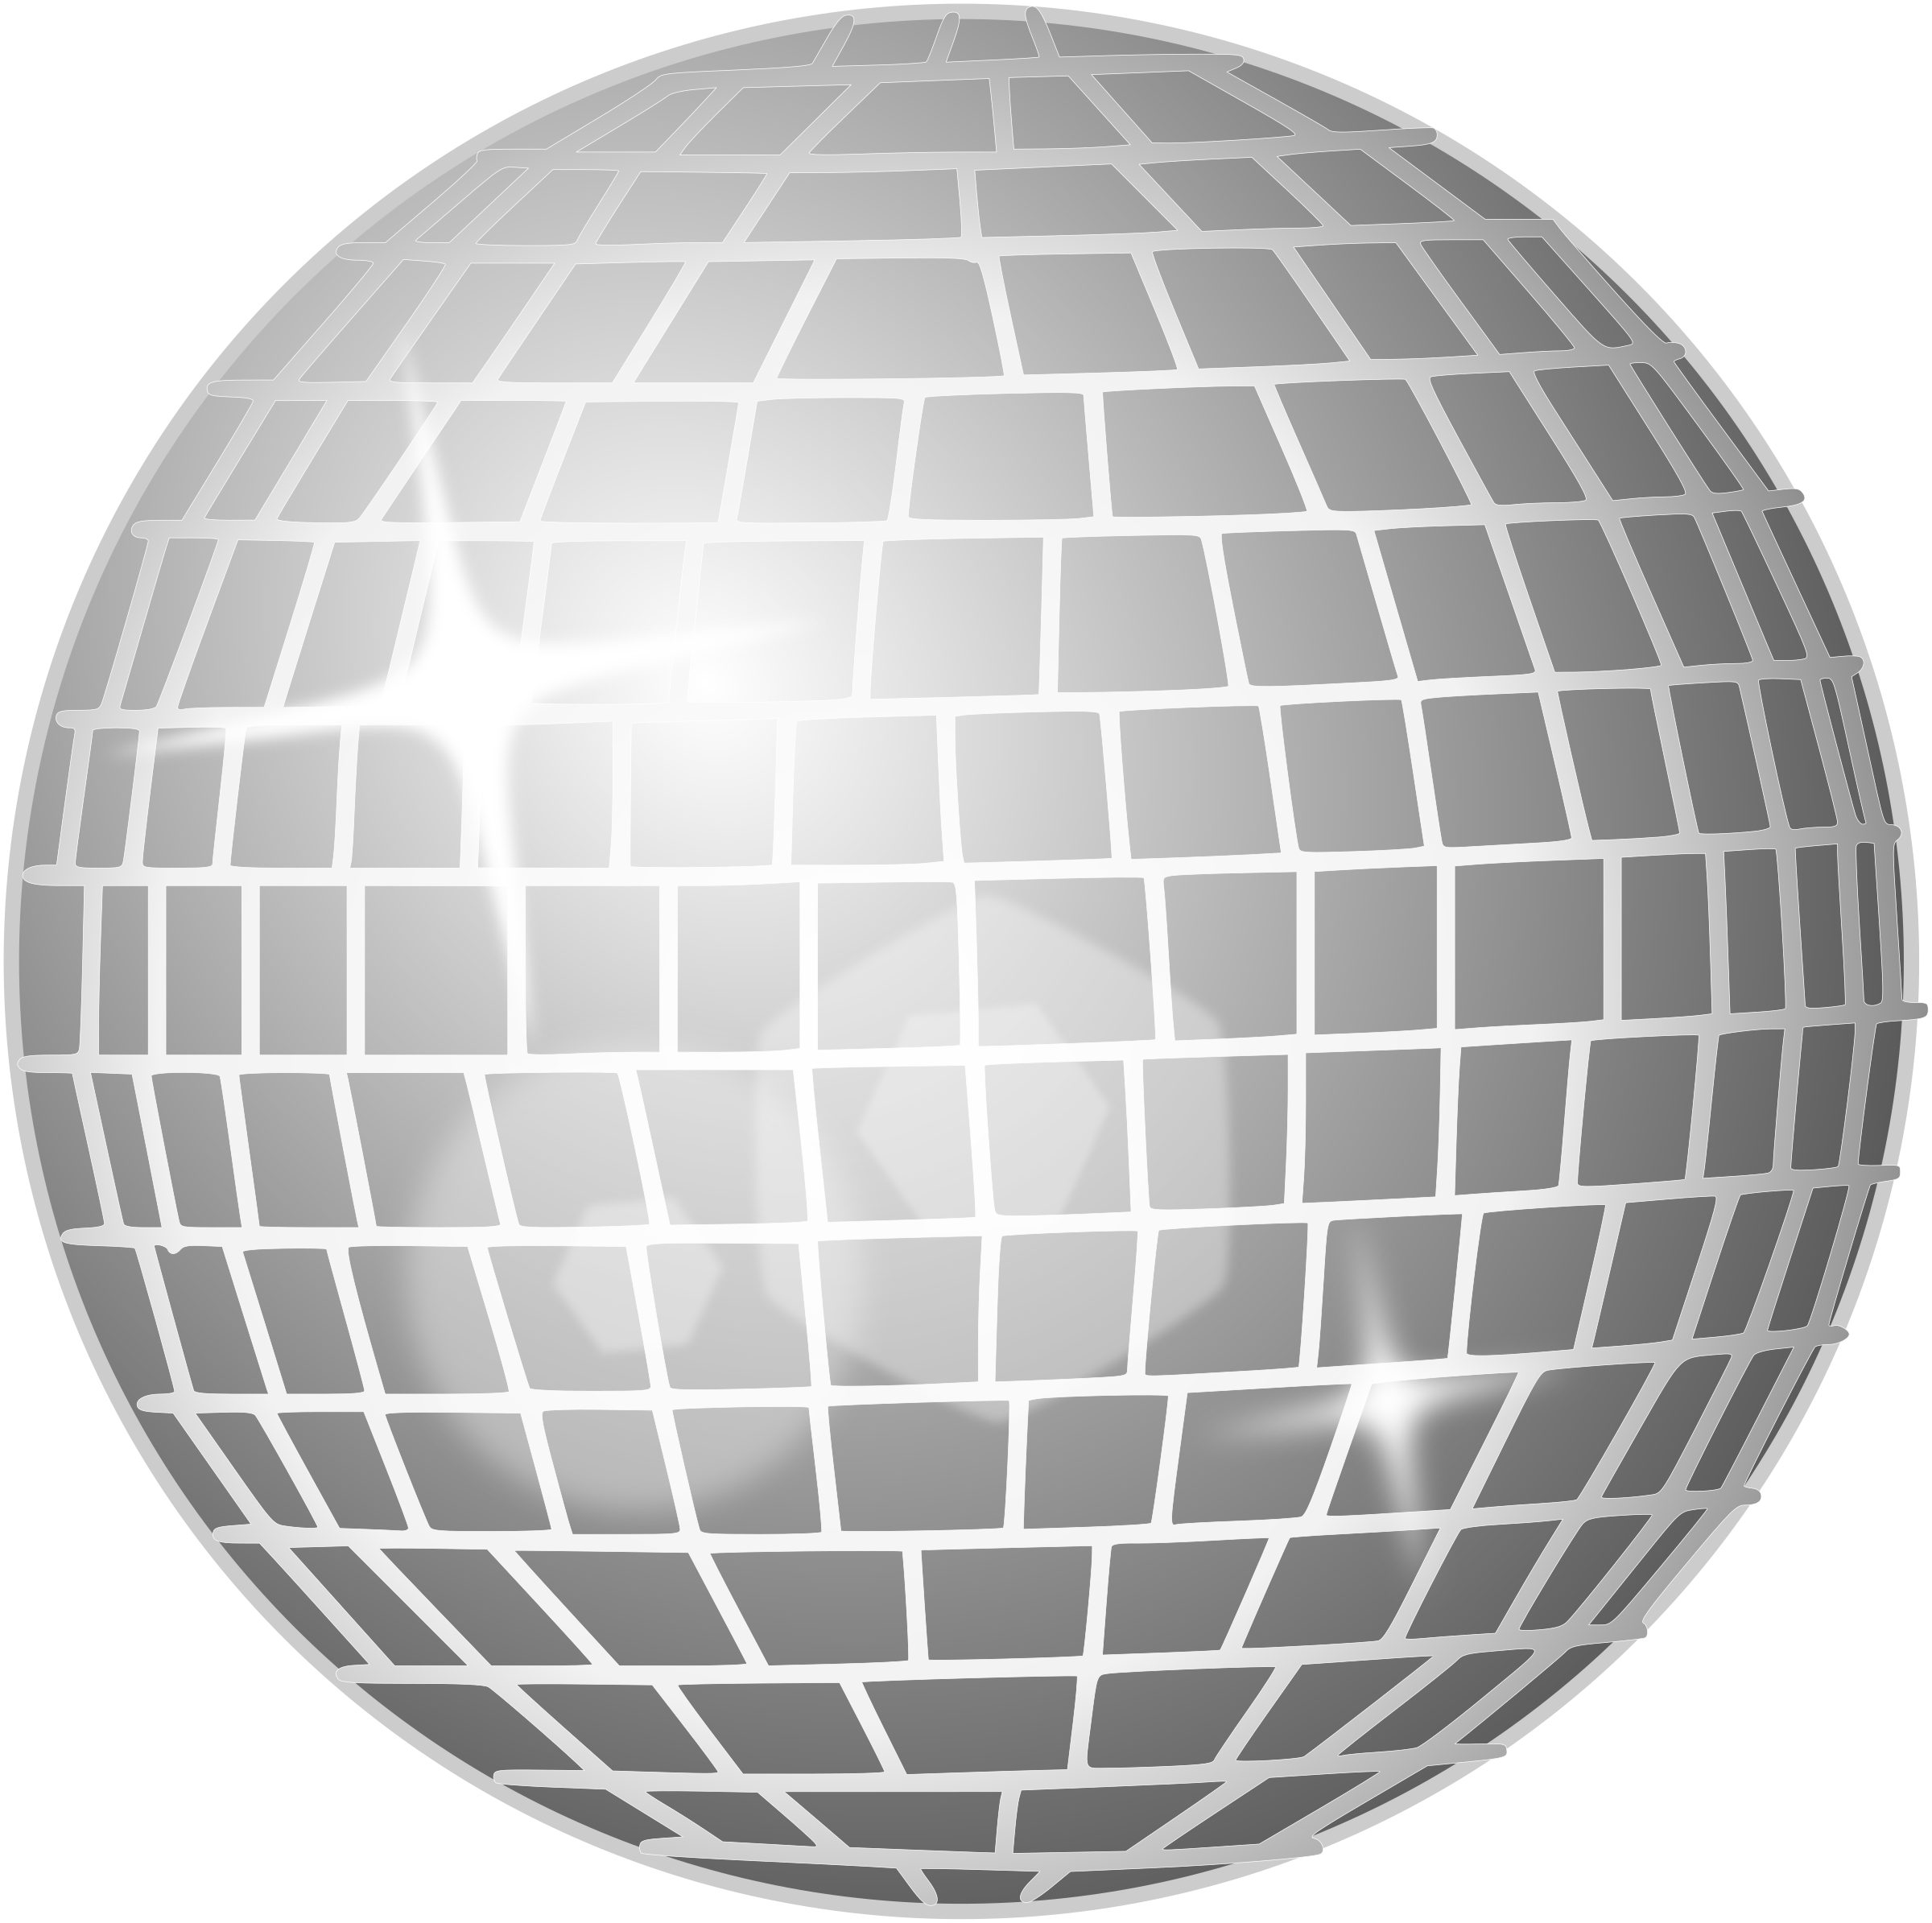 Disco Ball Remix by Merlin2525